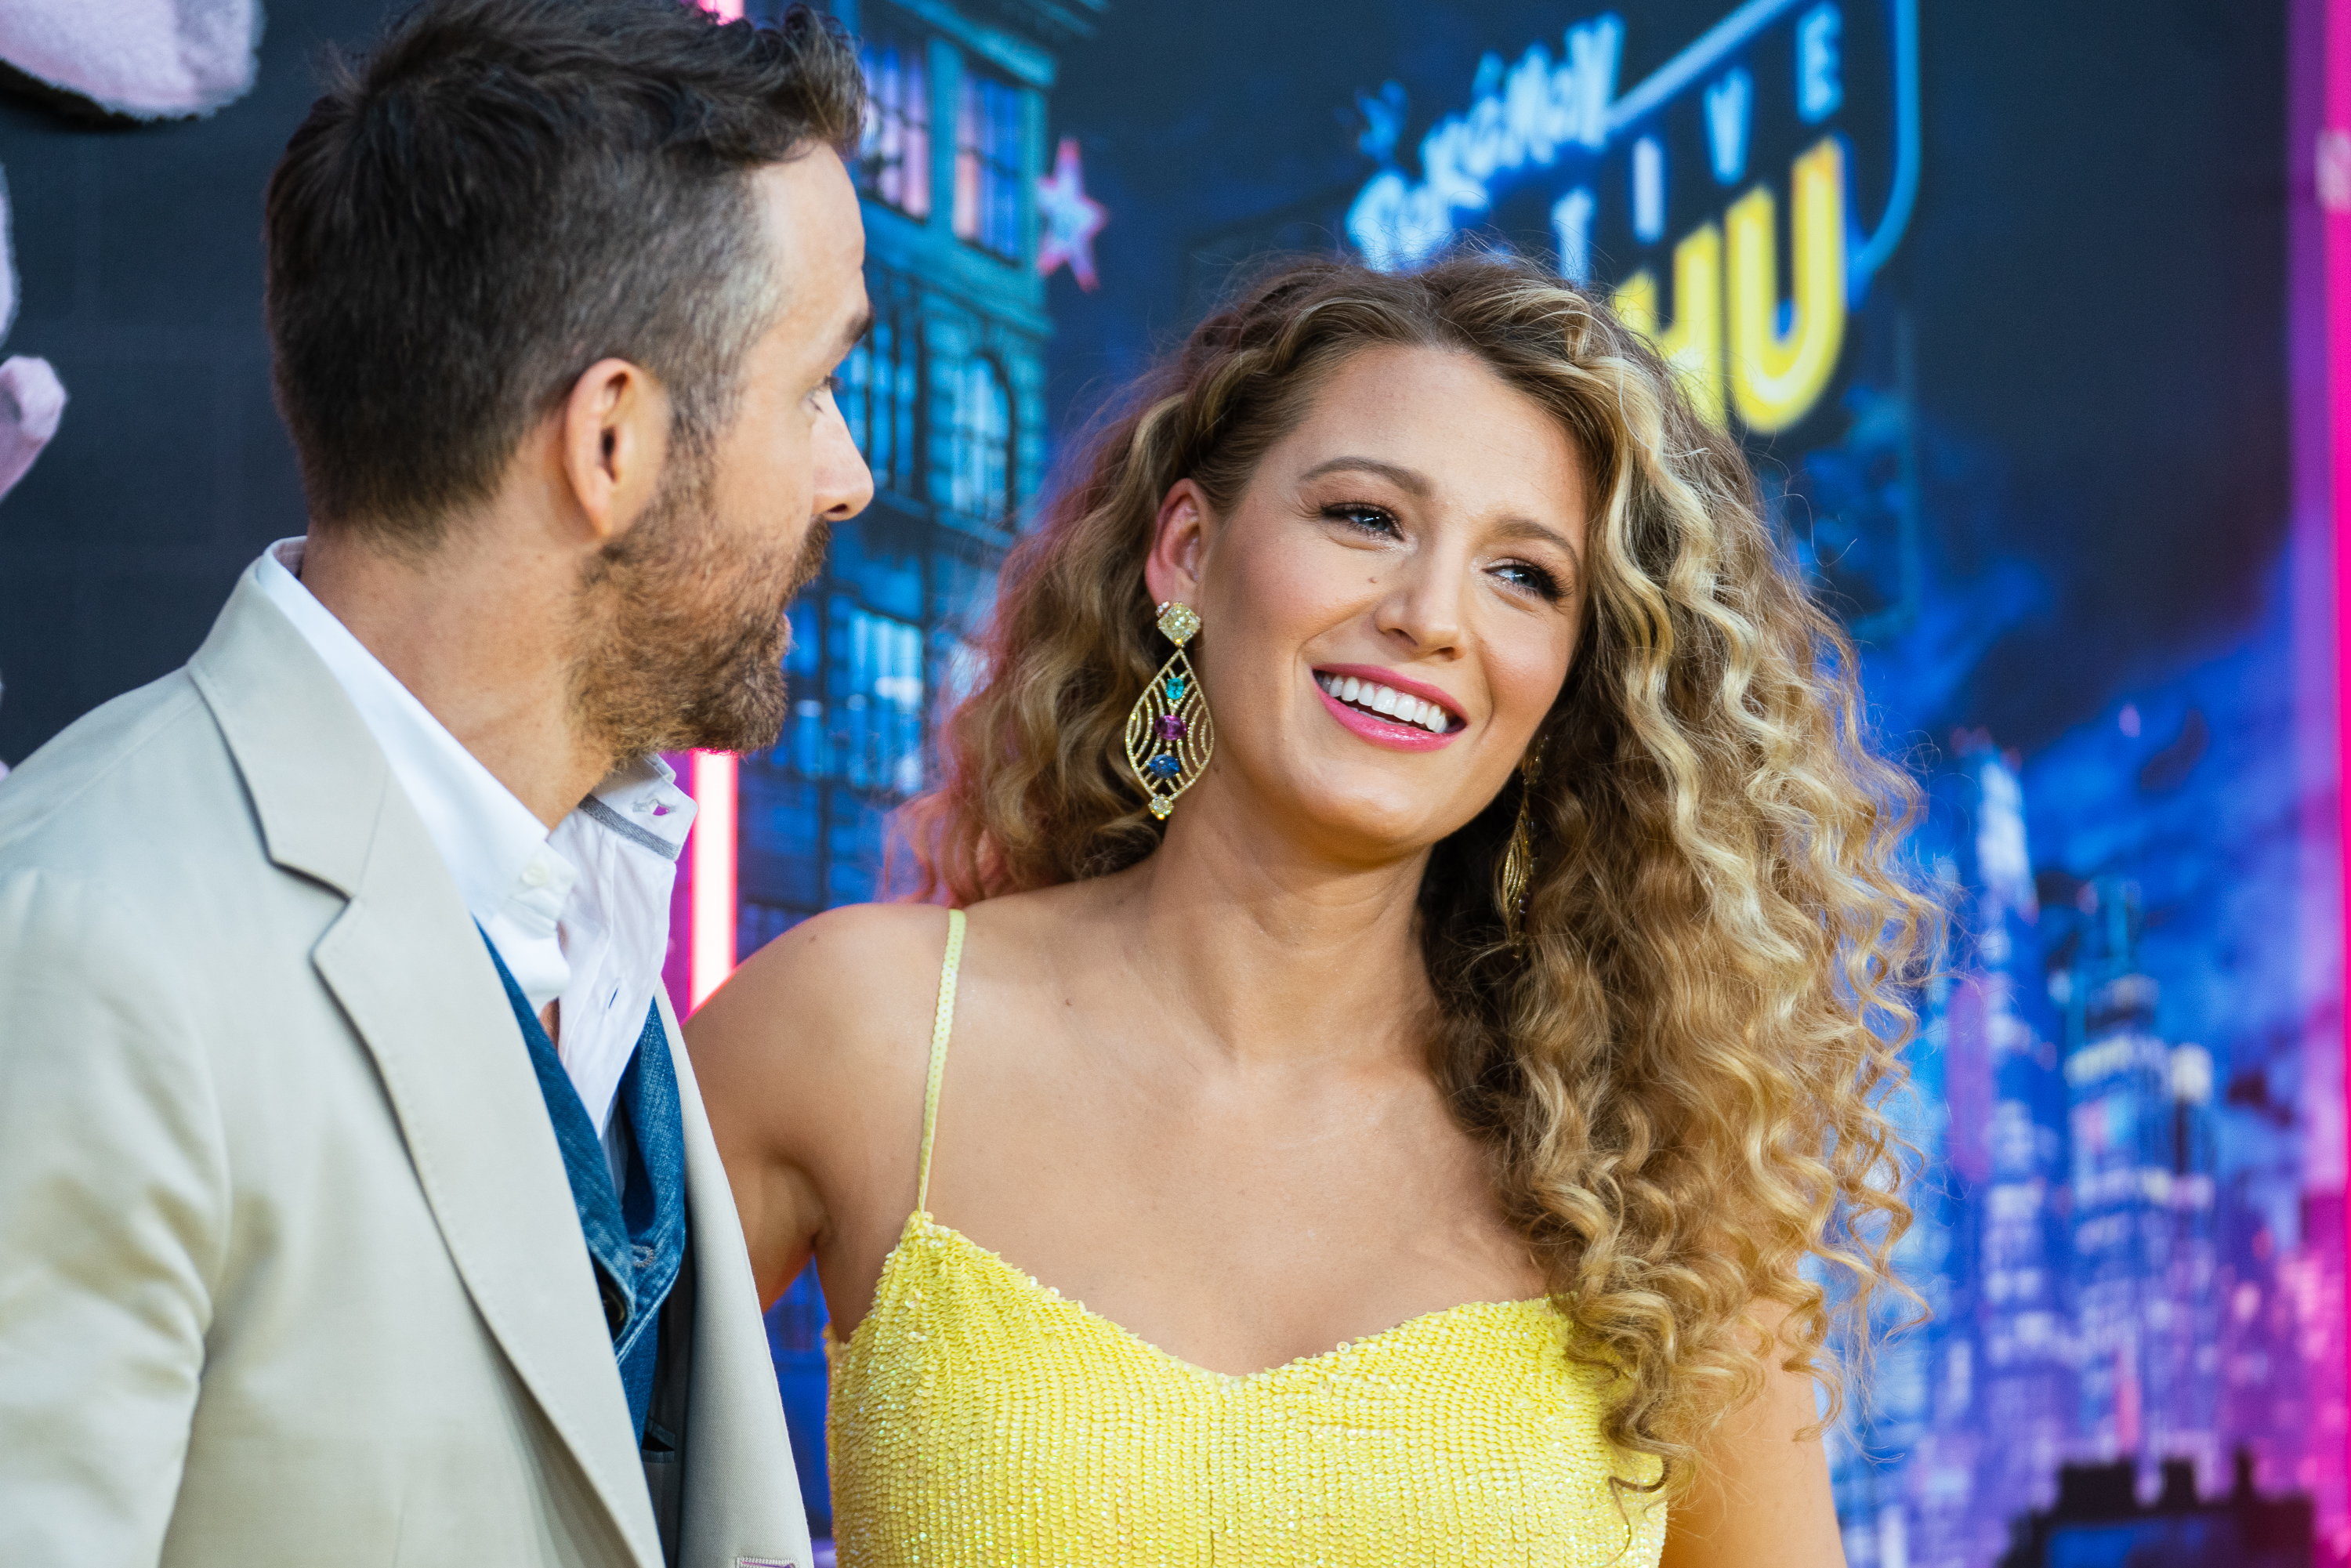 Blake Lively's recent Instagram activity is concerning the internet